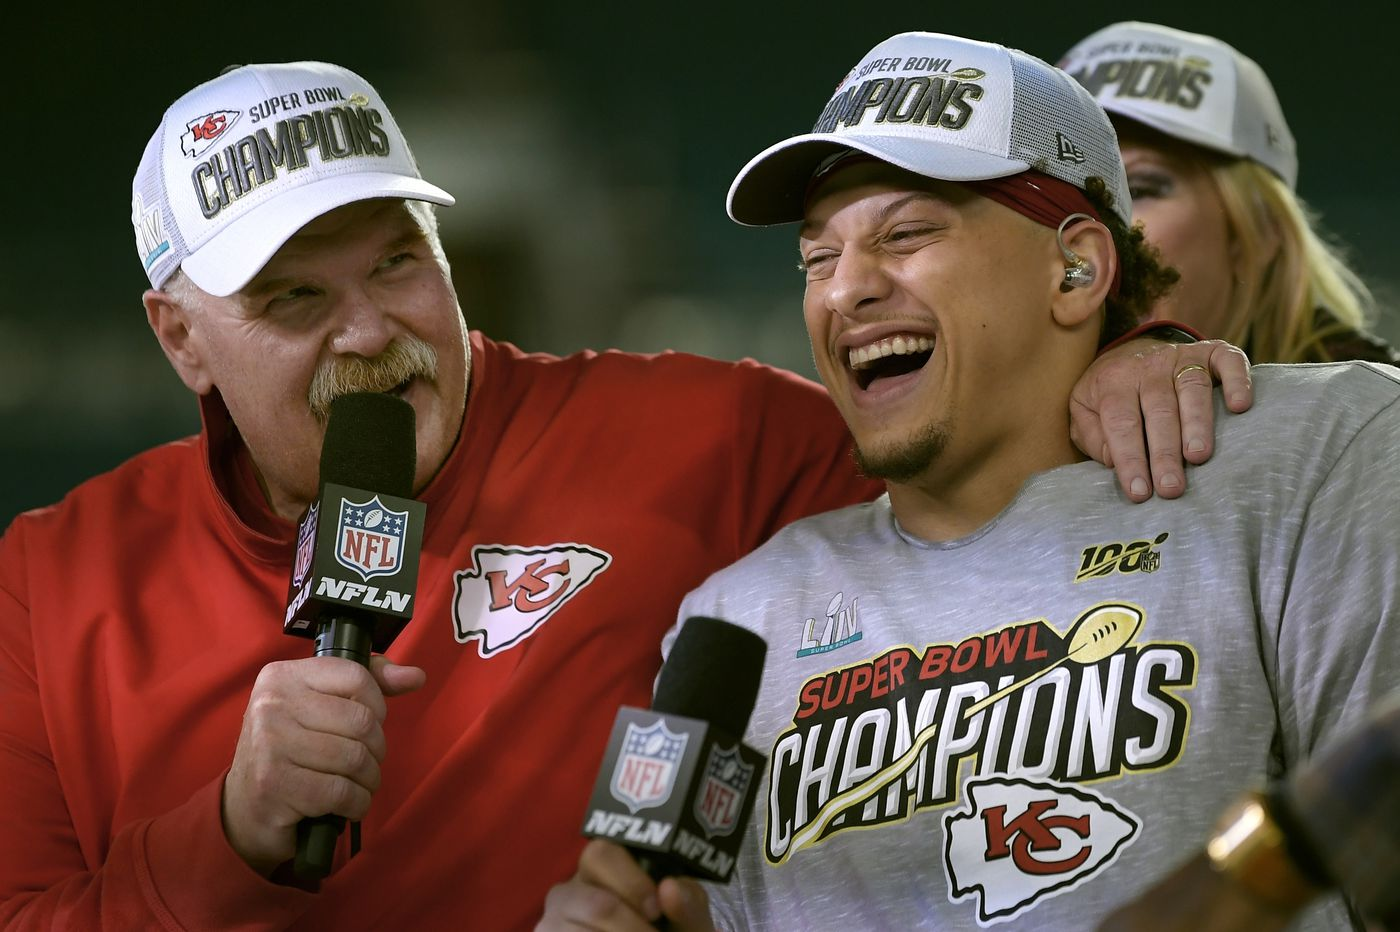 Andy Reid wouldn't have won a Super Bowl without Donovan McNabb. Or Brett Favre. Or, of course, Patrick Mahomes. | Mike Sielski